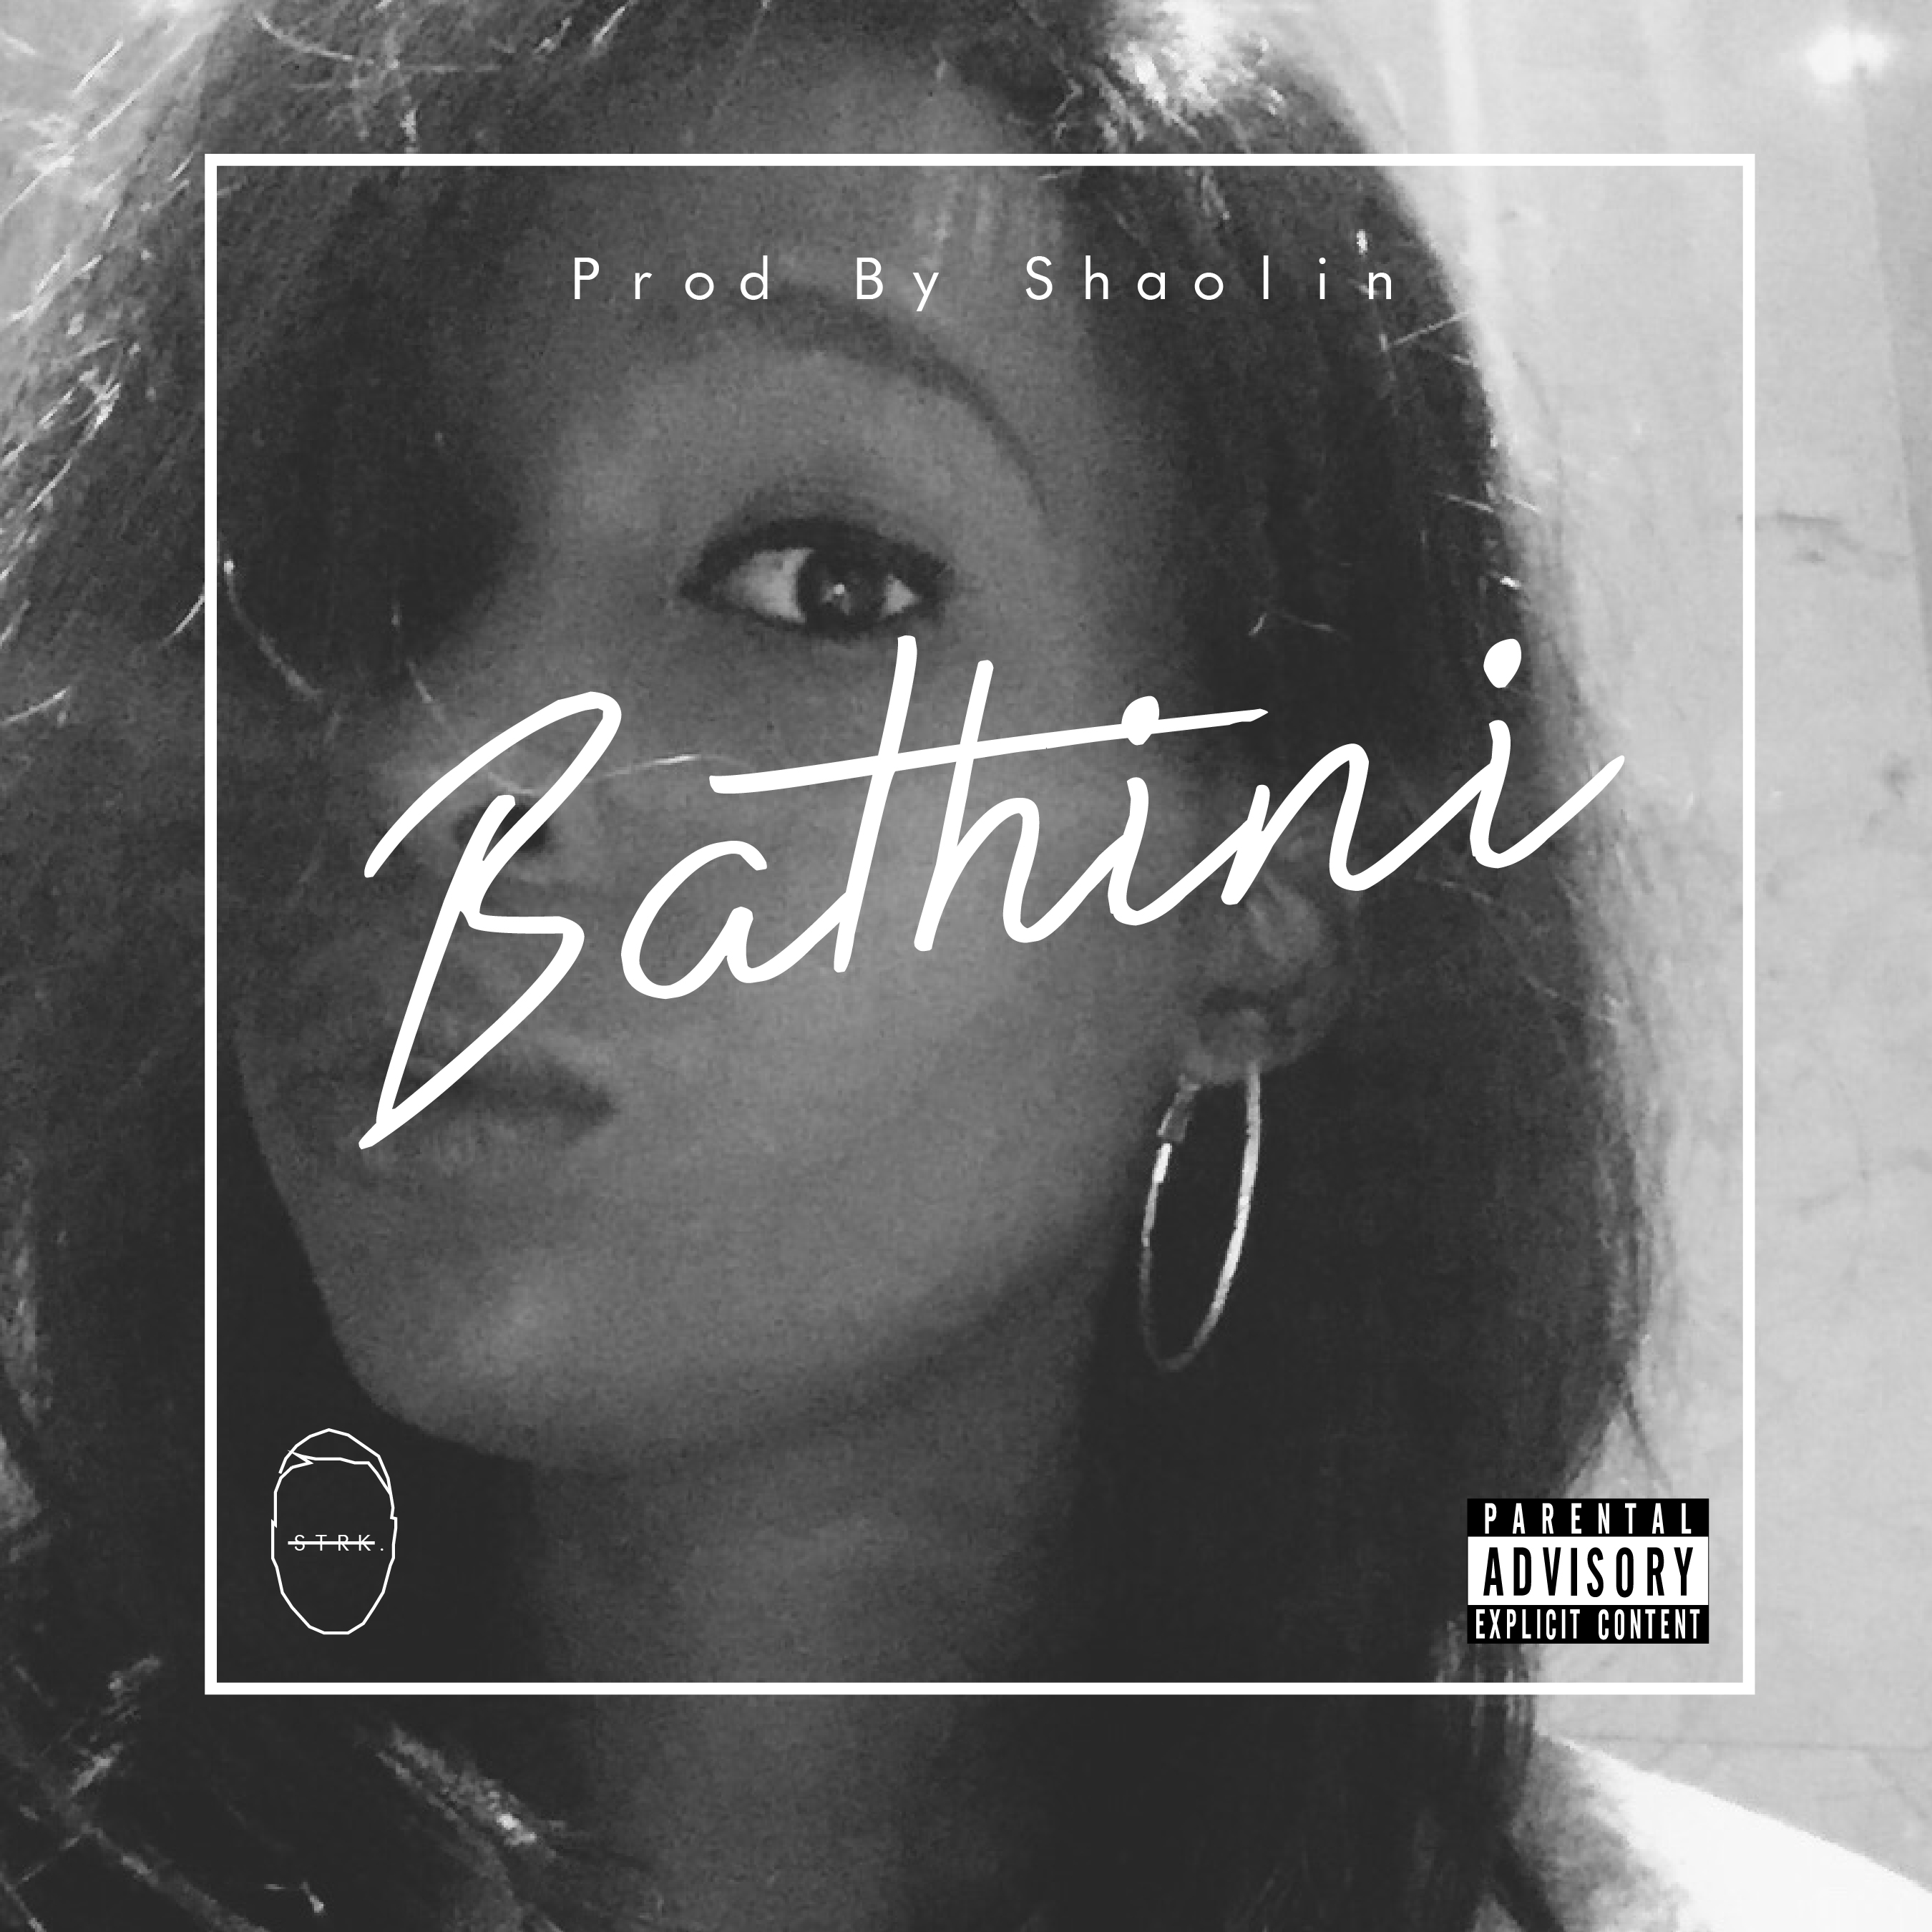 2Leestark – Bathini (Produced by Shaolin) [Download] BATHINI ARTWORK